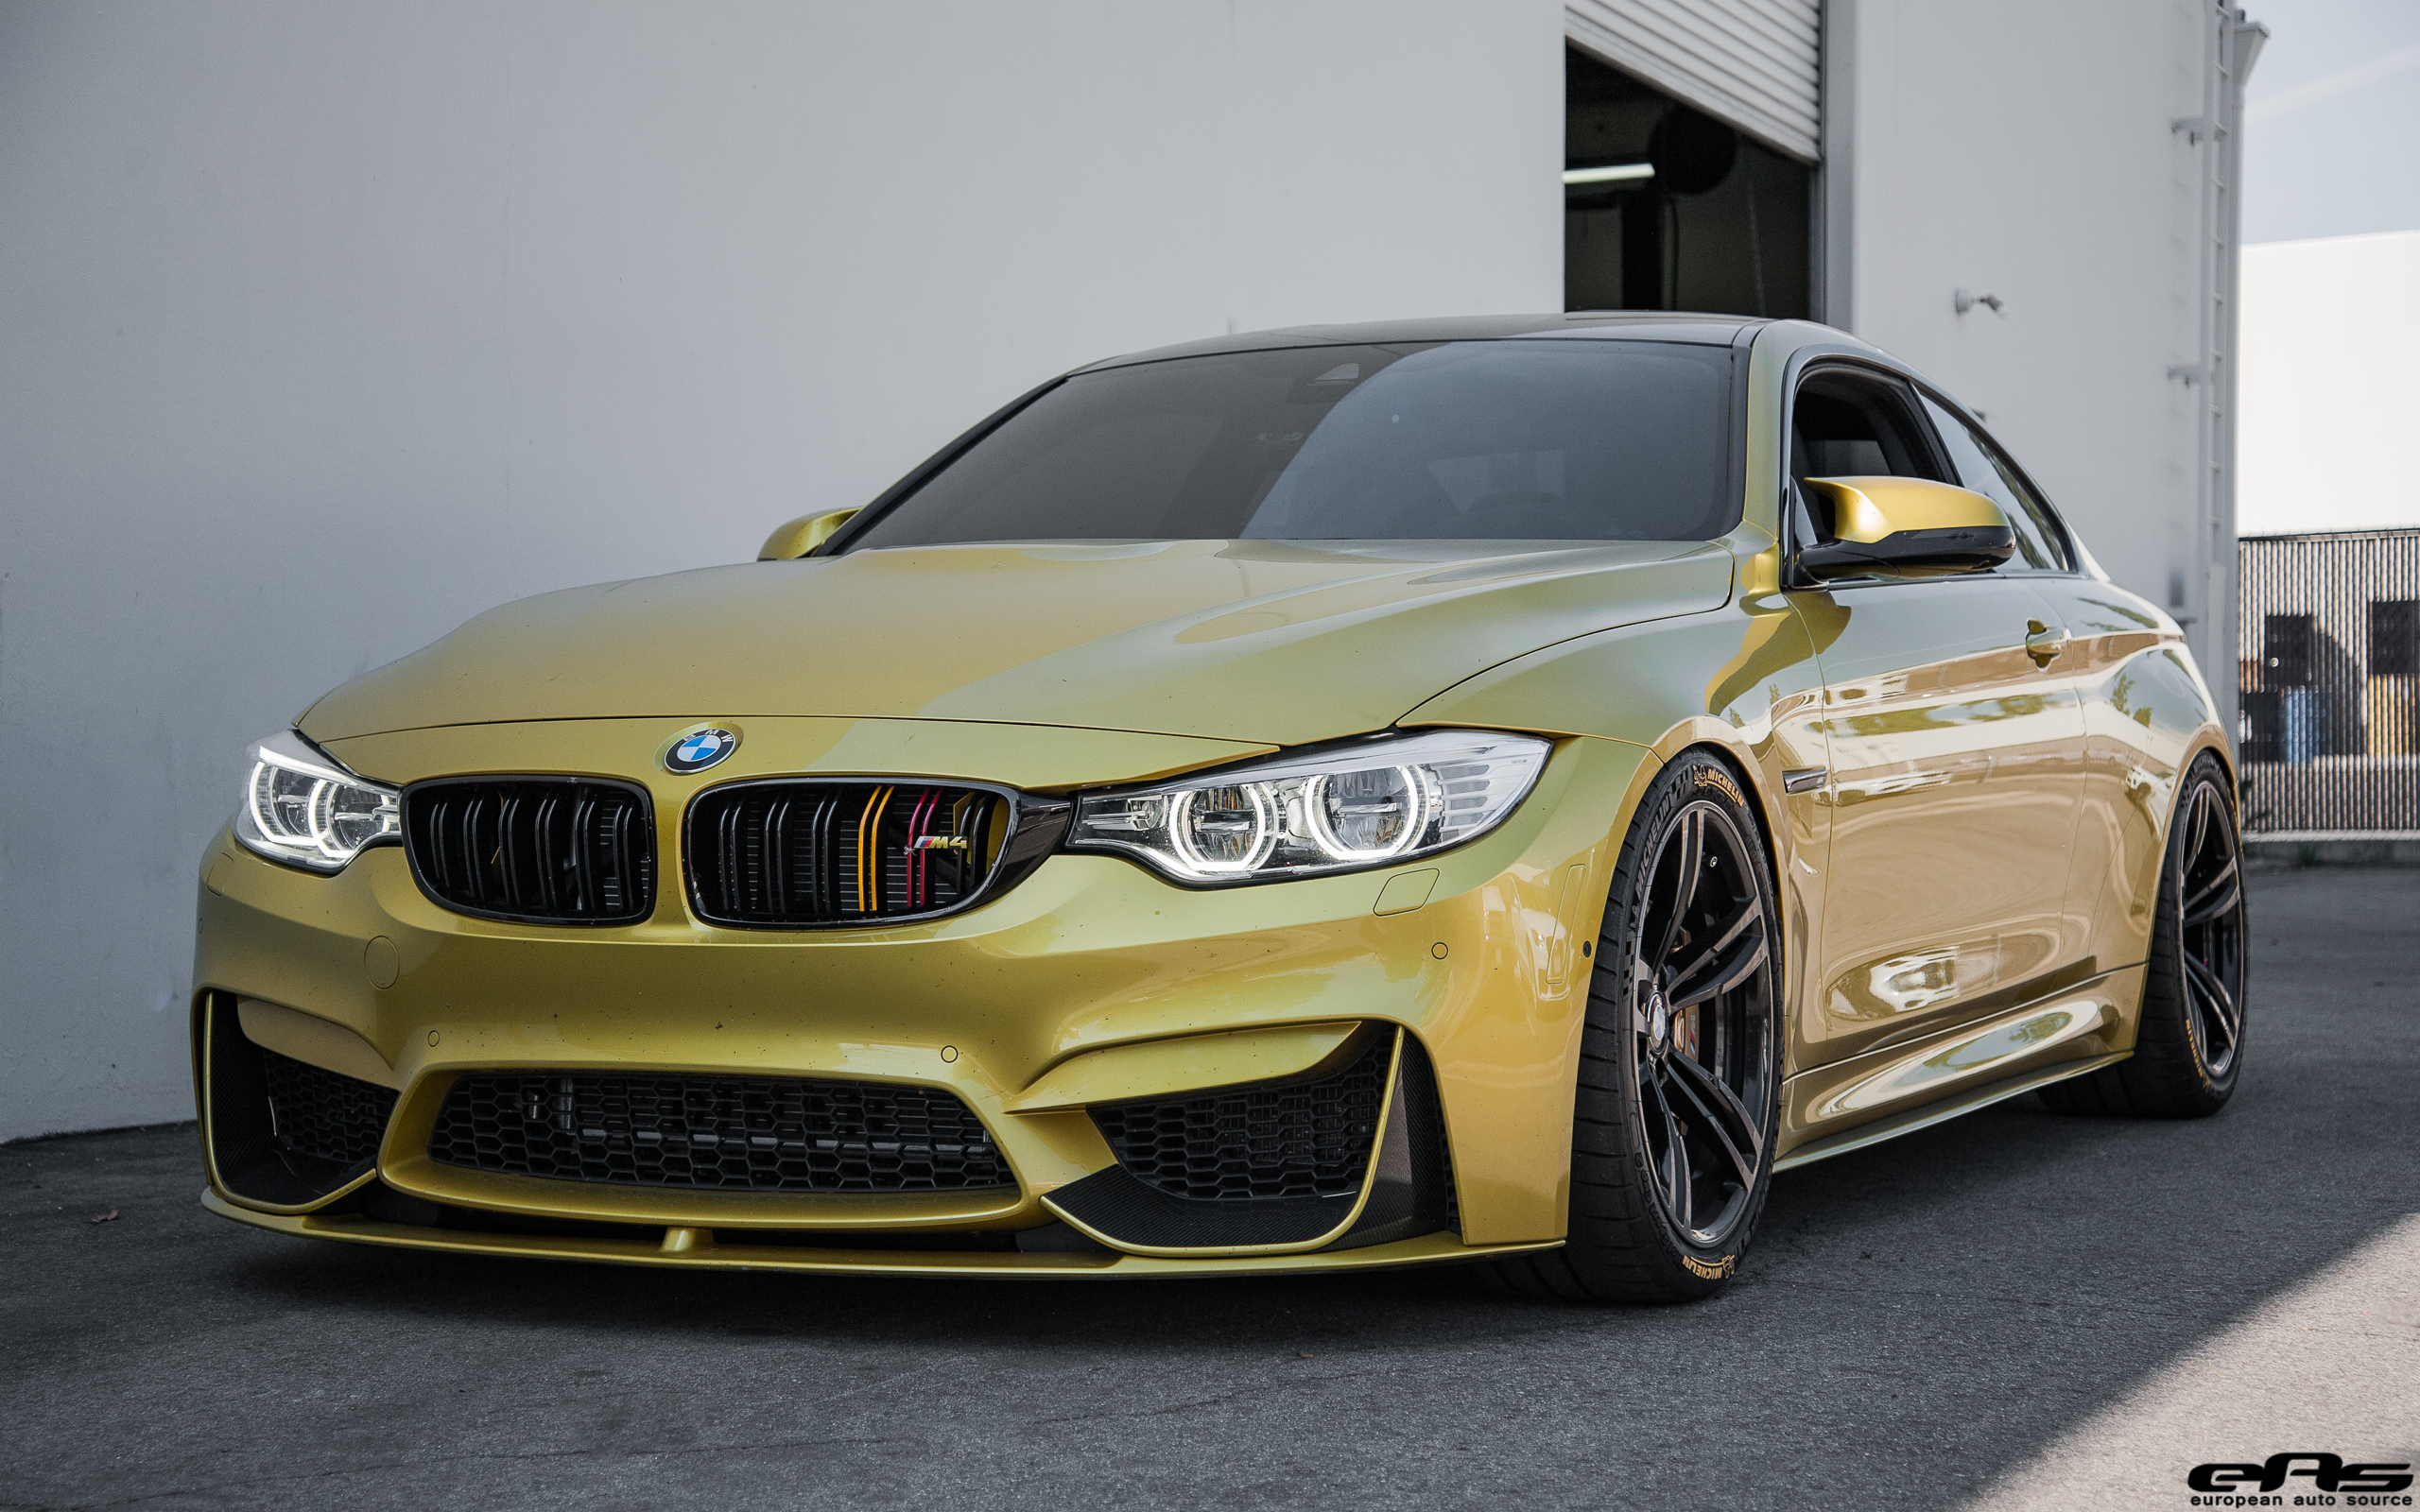 austin yellow bmw m4 build with a clean aftermarket look. Black Bedroom Furniture Sets. Home Design Ideas